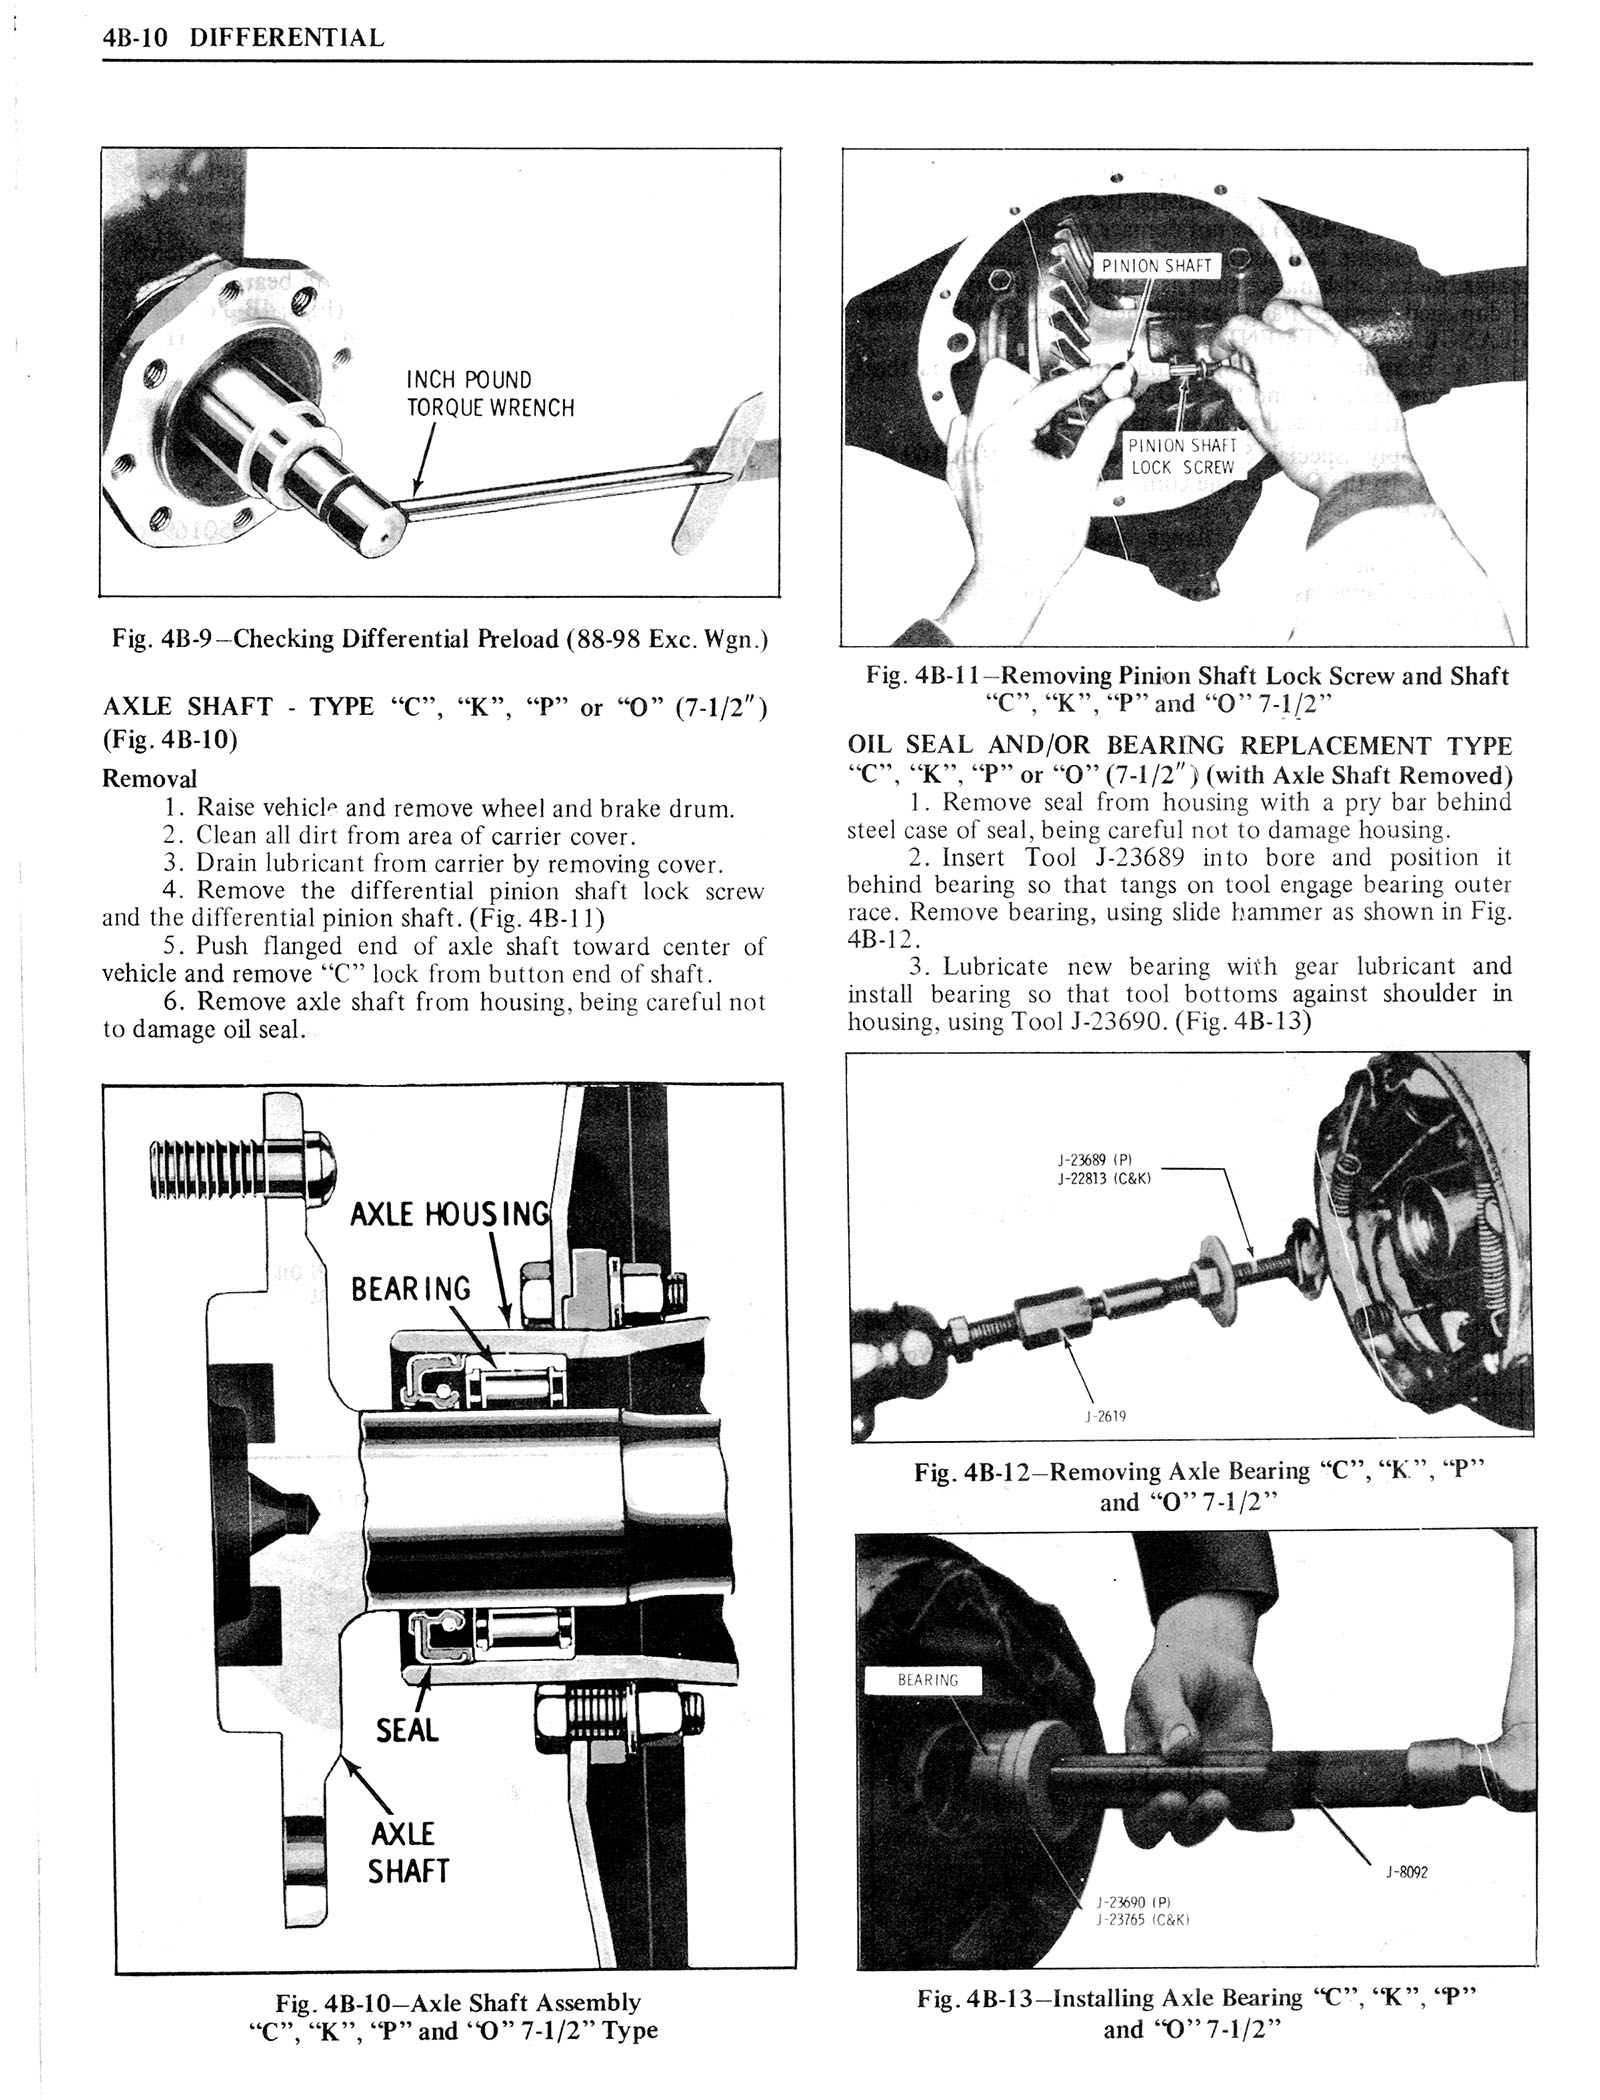 1976 Oldsmobile Service Manual page 296 of 1390